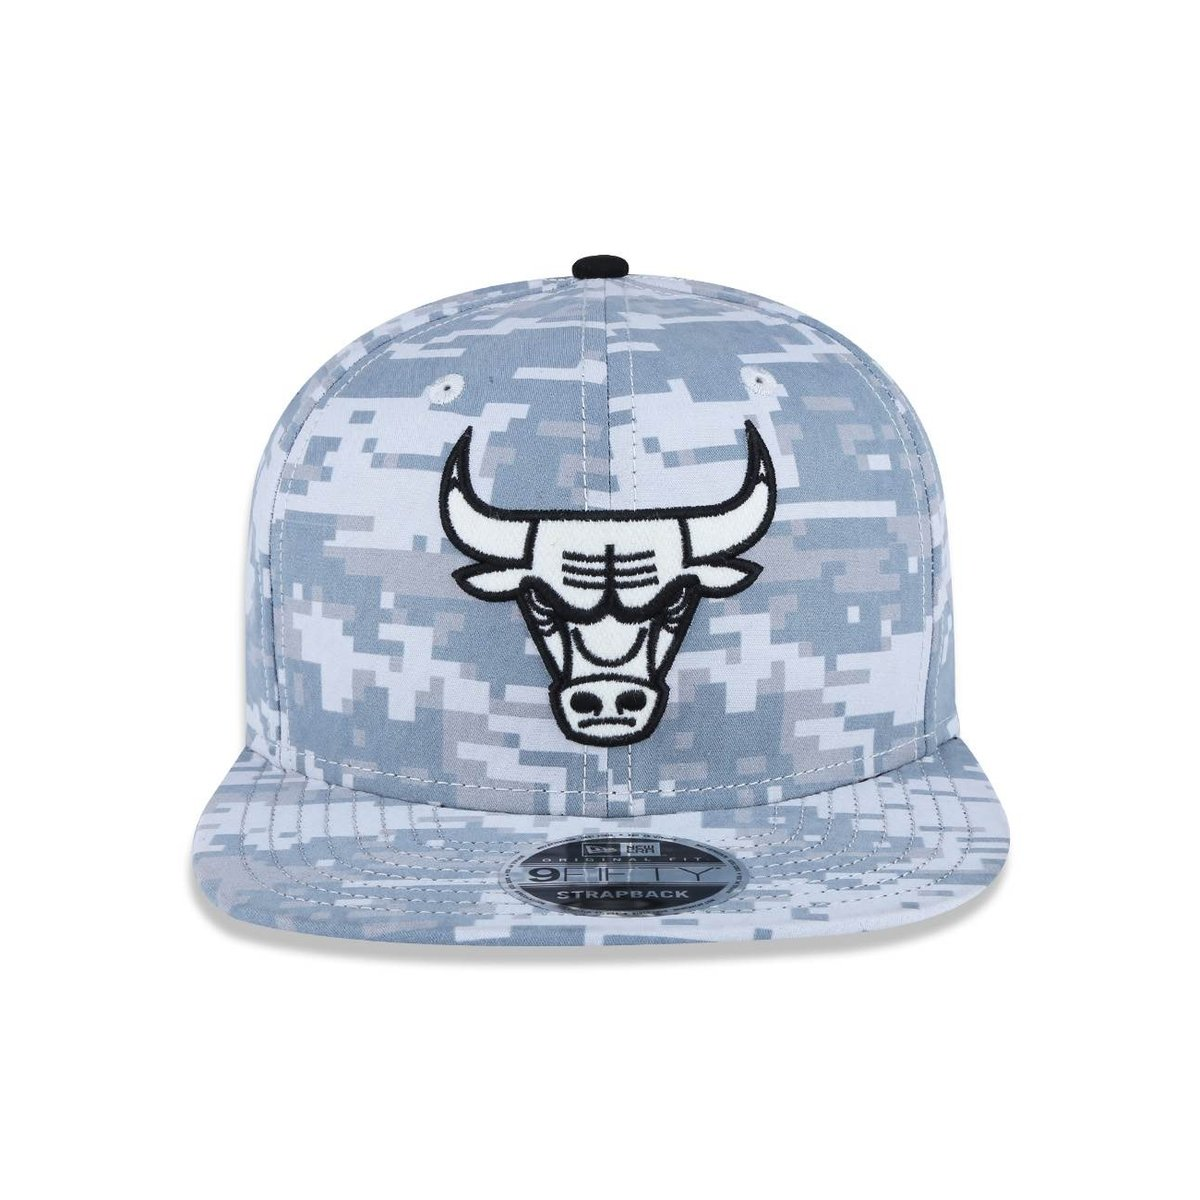 ... Boné 950 Original Fit Chicago Bulls NBA Aba Reta Snapback New Era ... 7a8c5e8b204